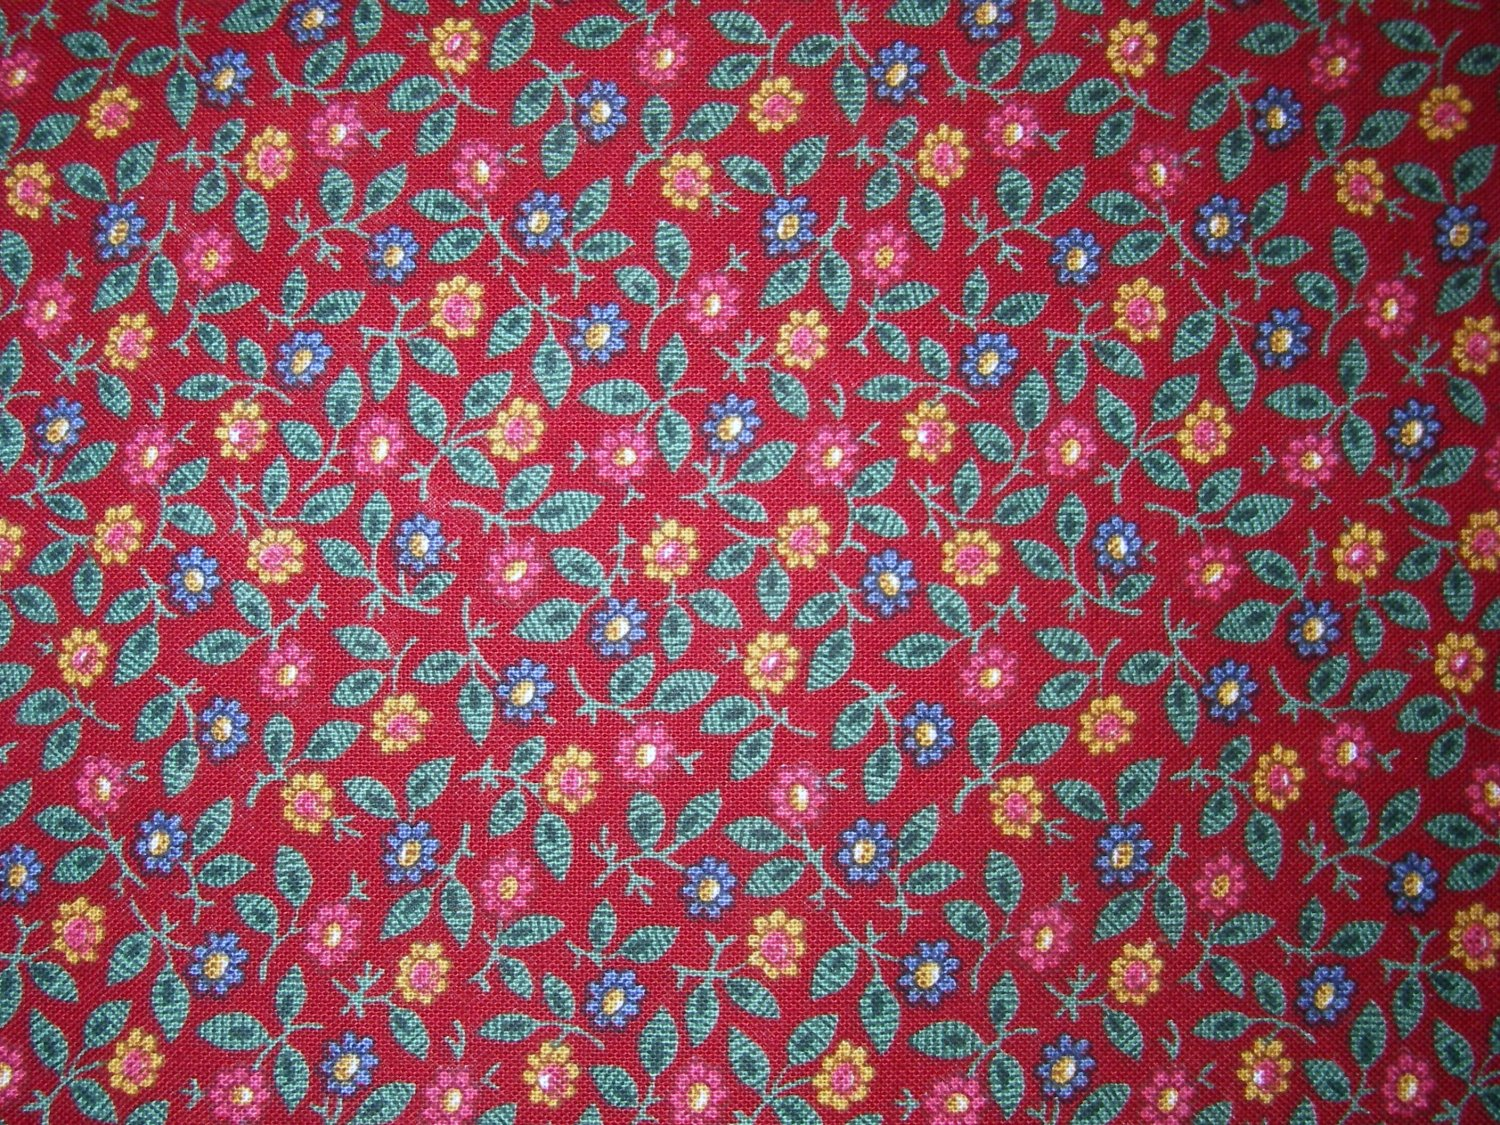 2/3 yard - Dark red fabric with tiny pink, yellow, blue flowers and green leaves all over